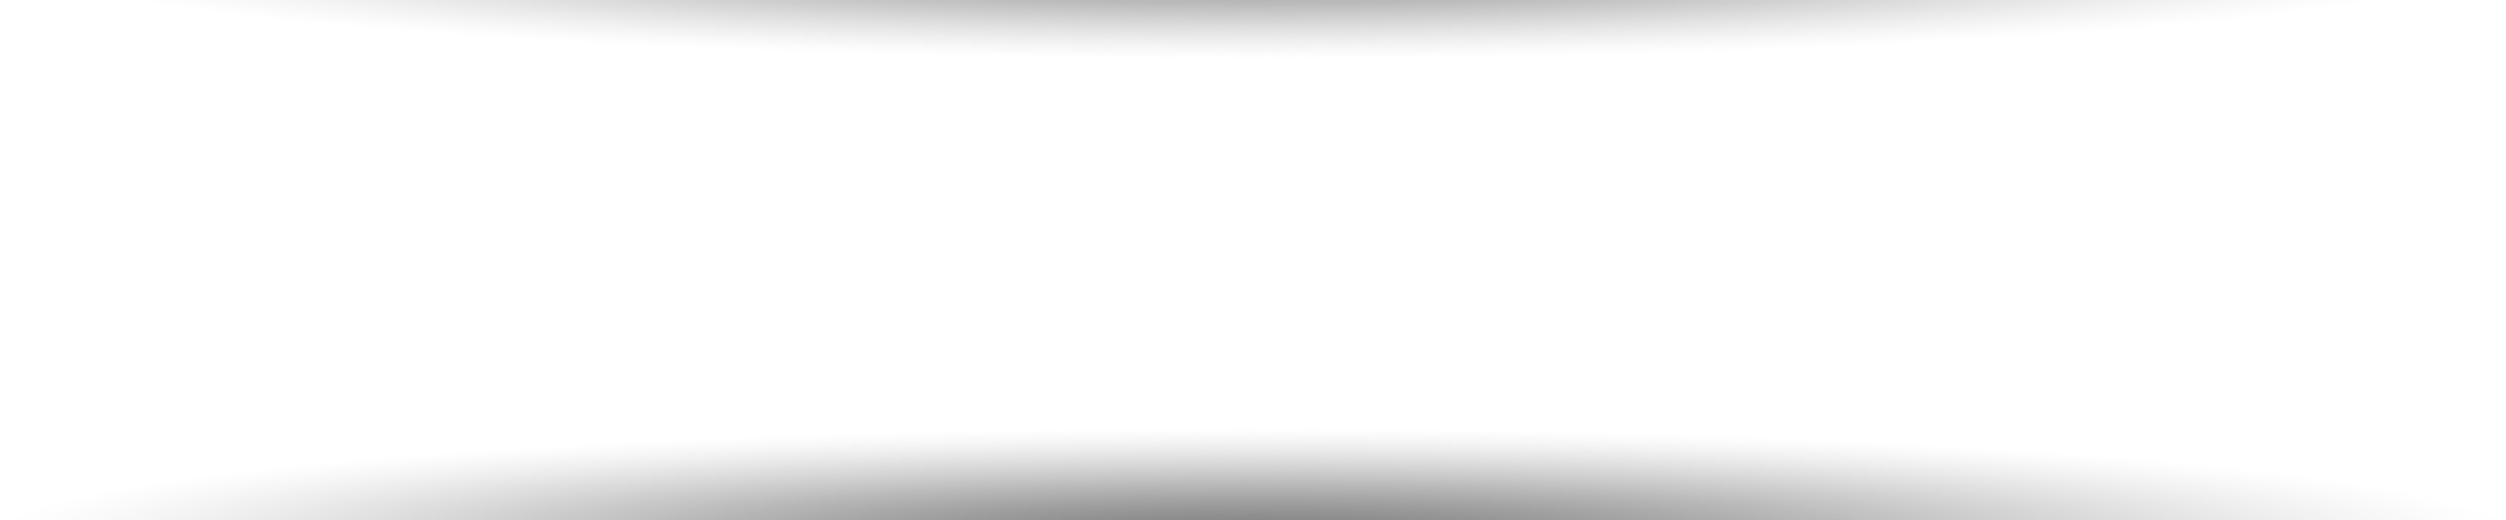 line-png-white-3.png